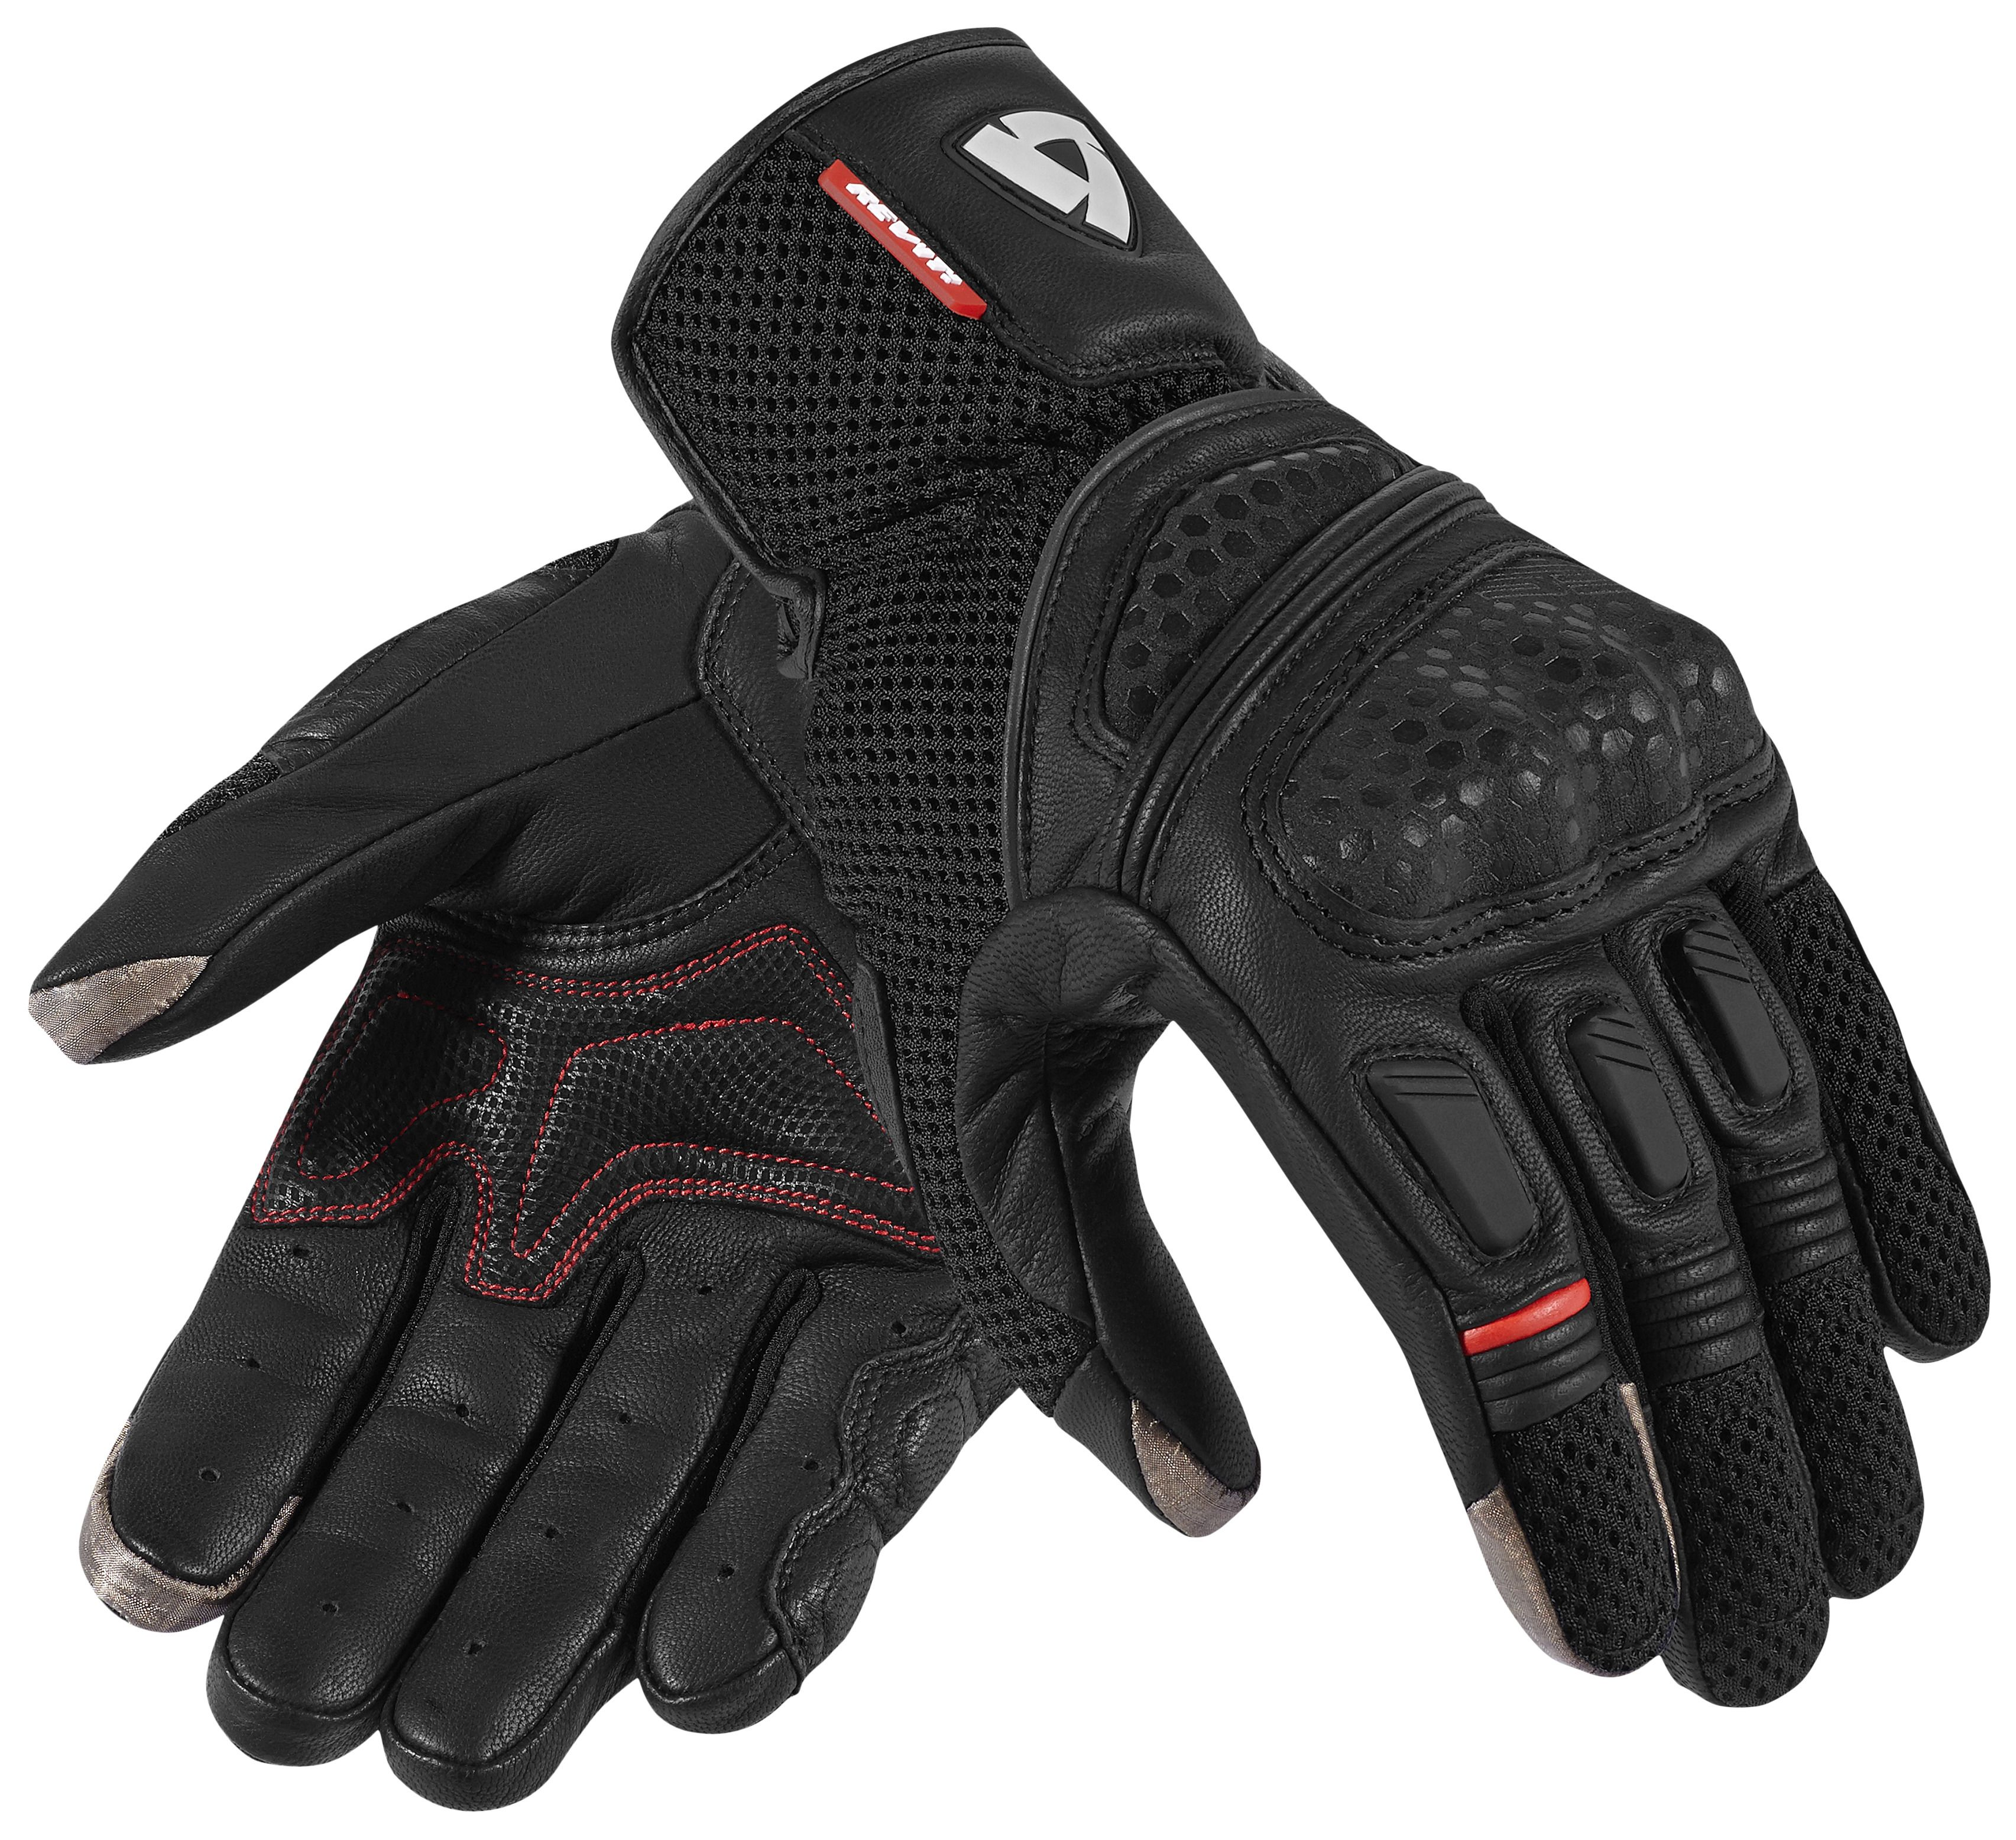 Motorcycle gloves mesh - Dirt 2 Gloves Revzilla